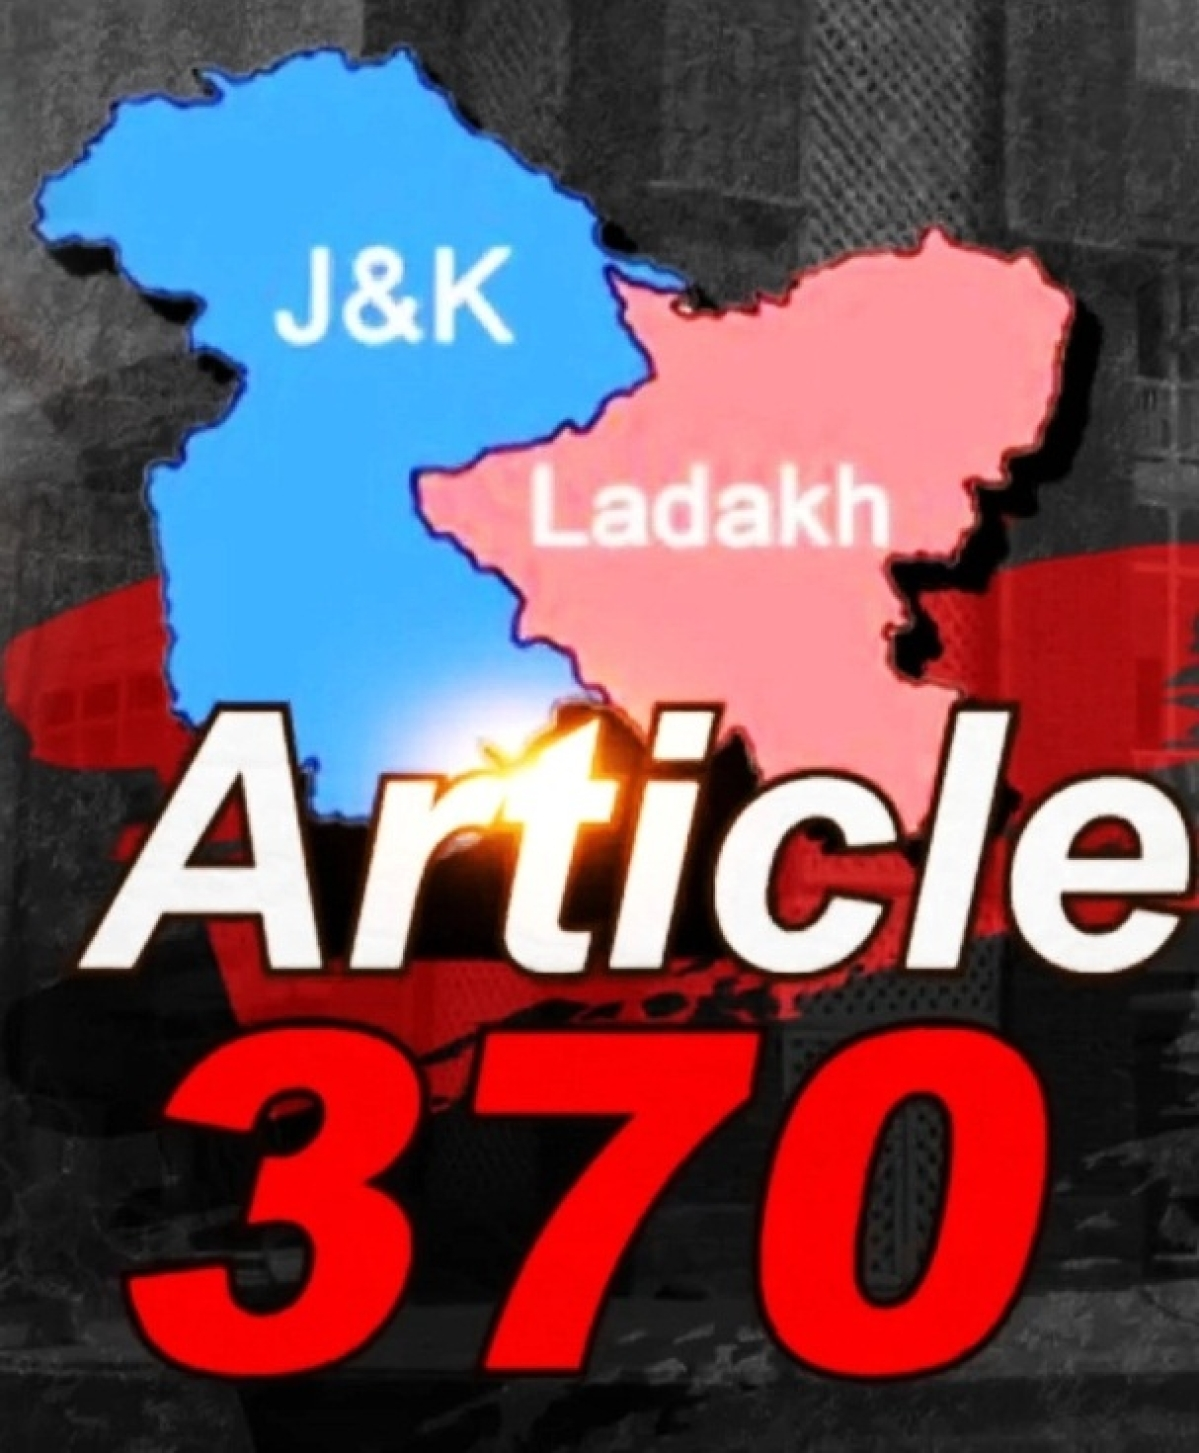 Kashmir Article 370: Hundreds Protest outside Indian Consulate in UK over